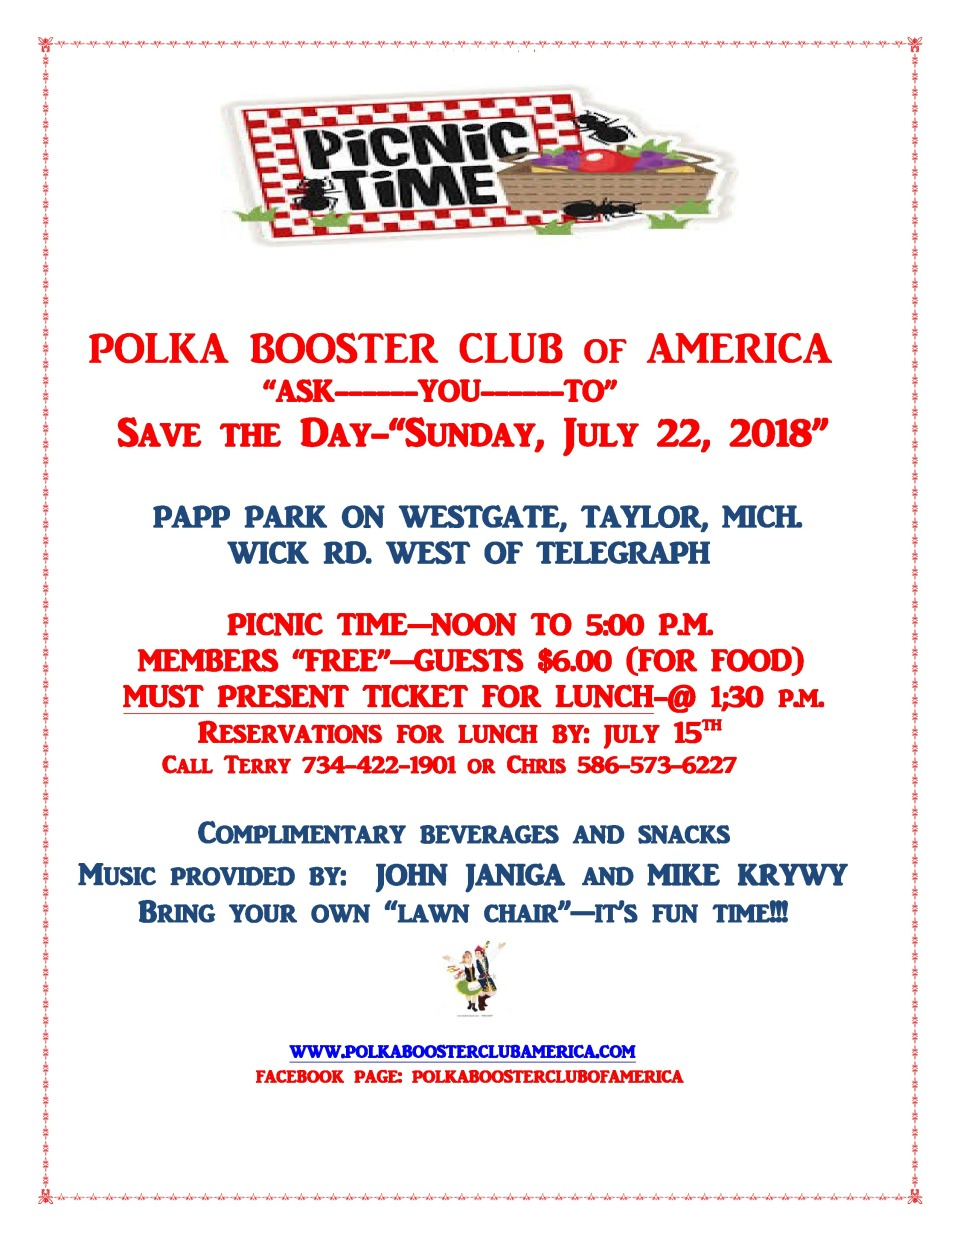 POLKA BOOSTER CLUB of AMERICA-page-0